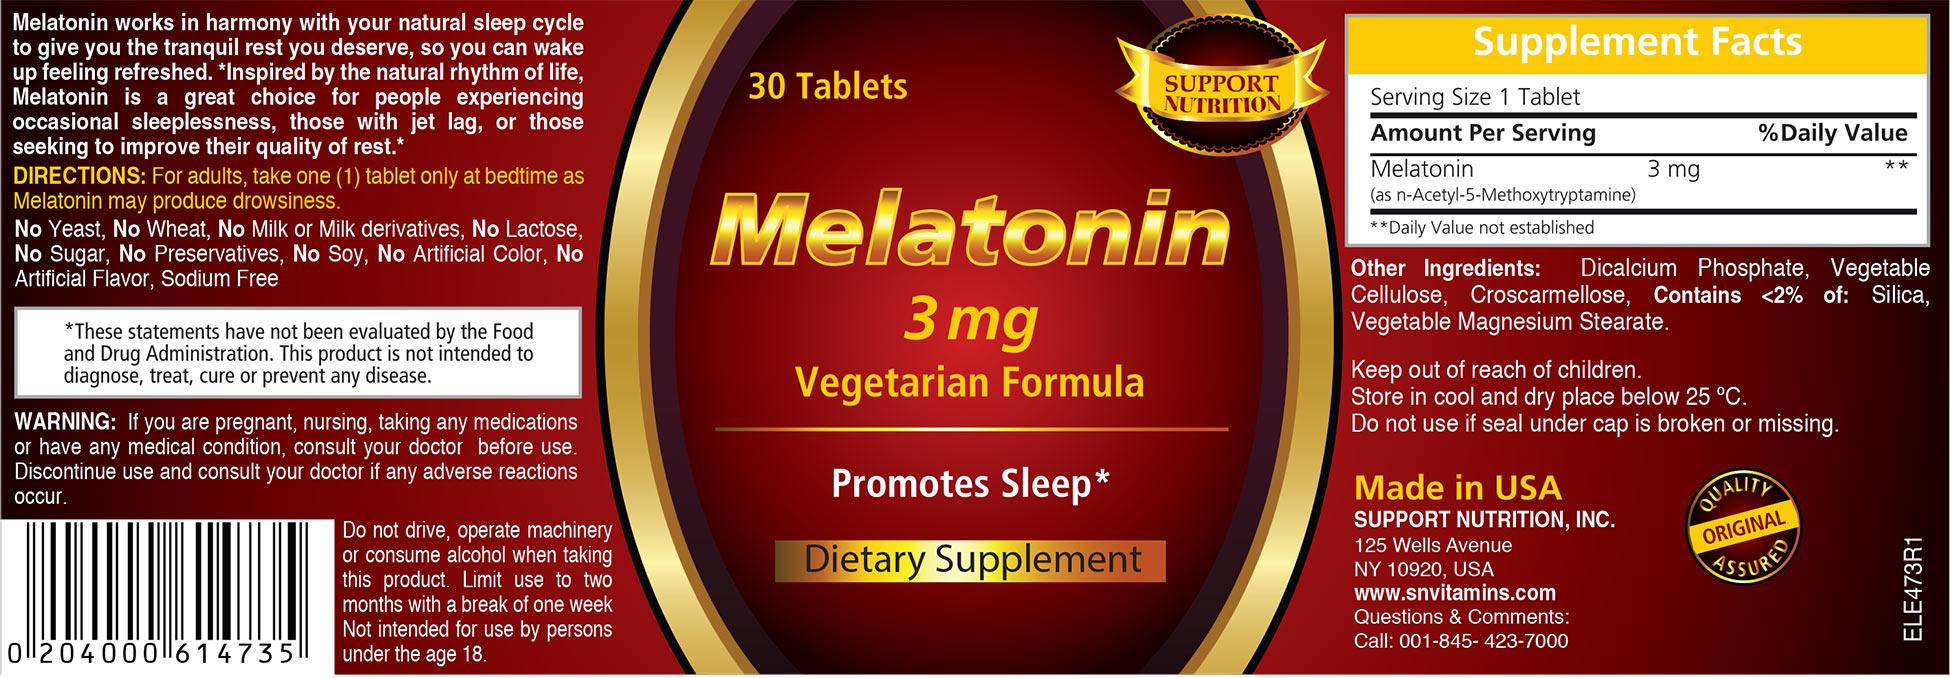 Melatonin Dietary Supplement